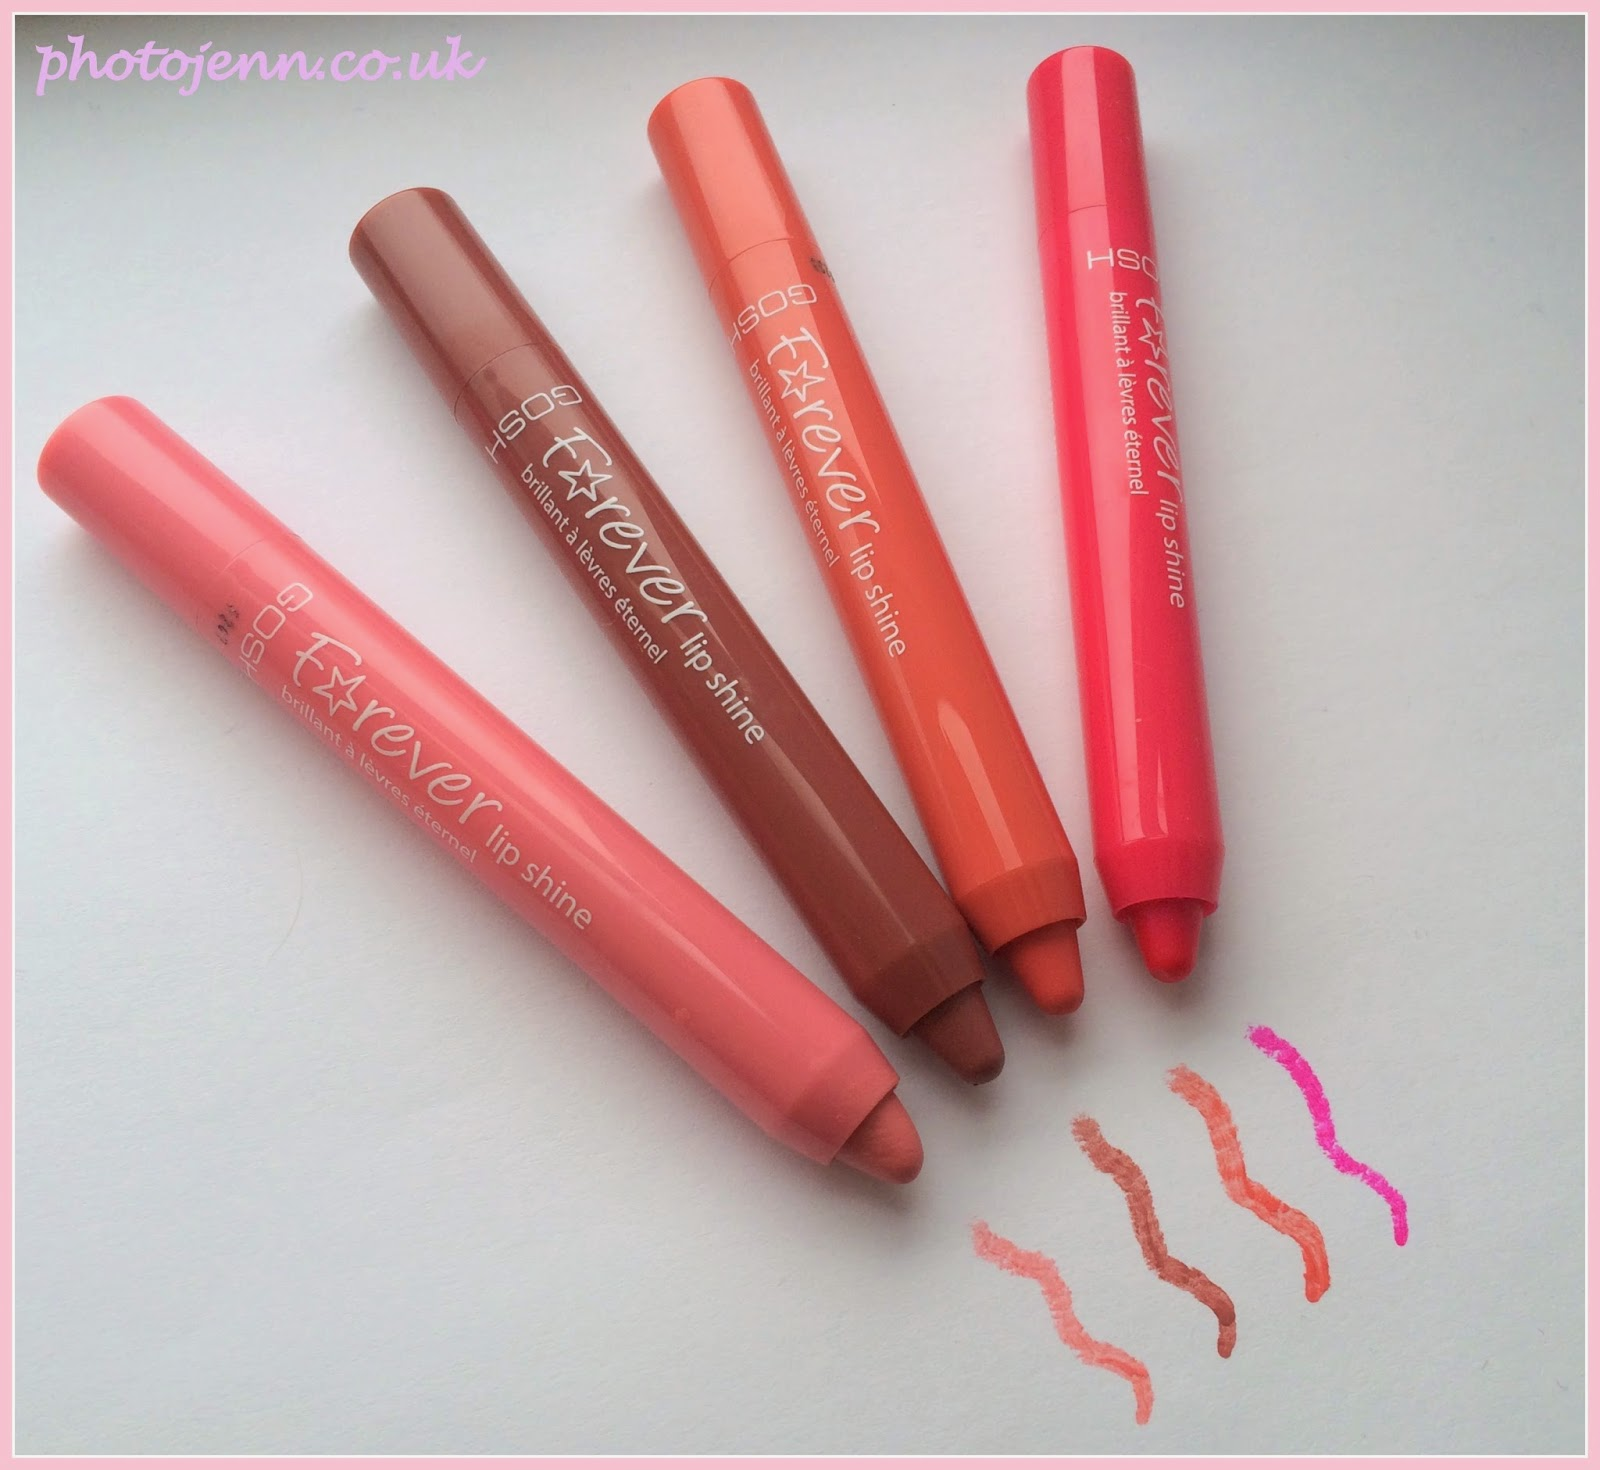 gosh-forever-lip-shine-2015-shades